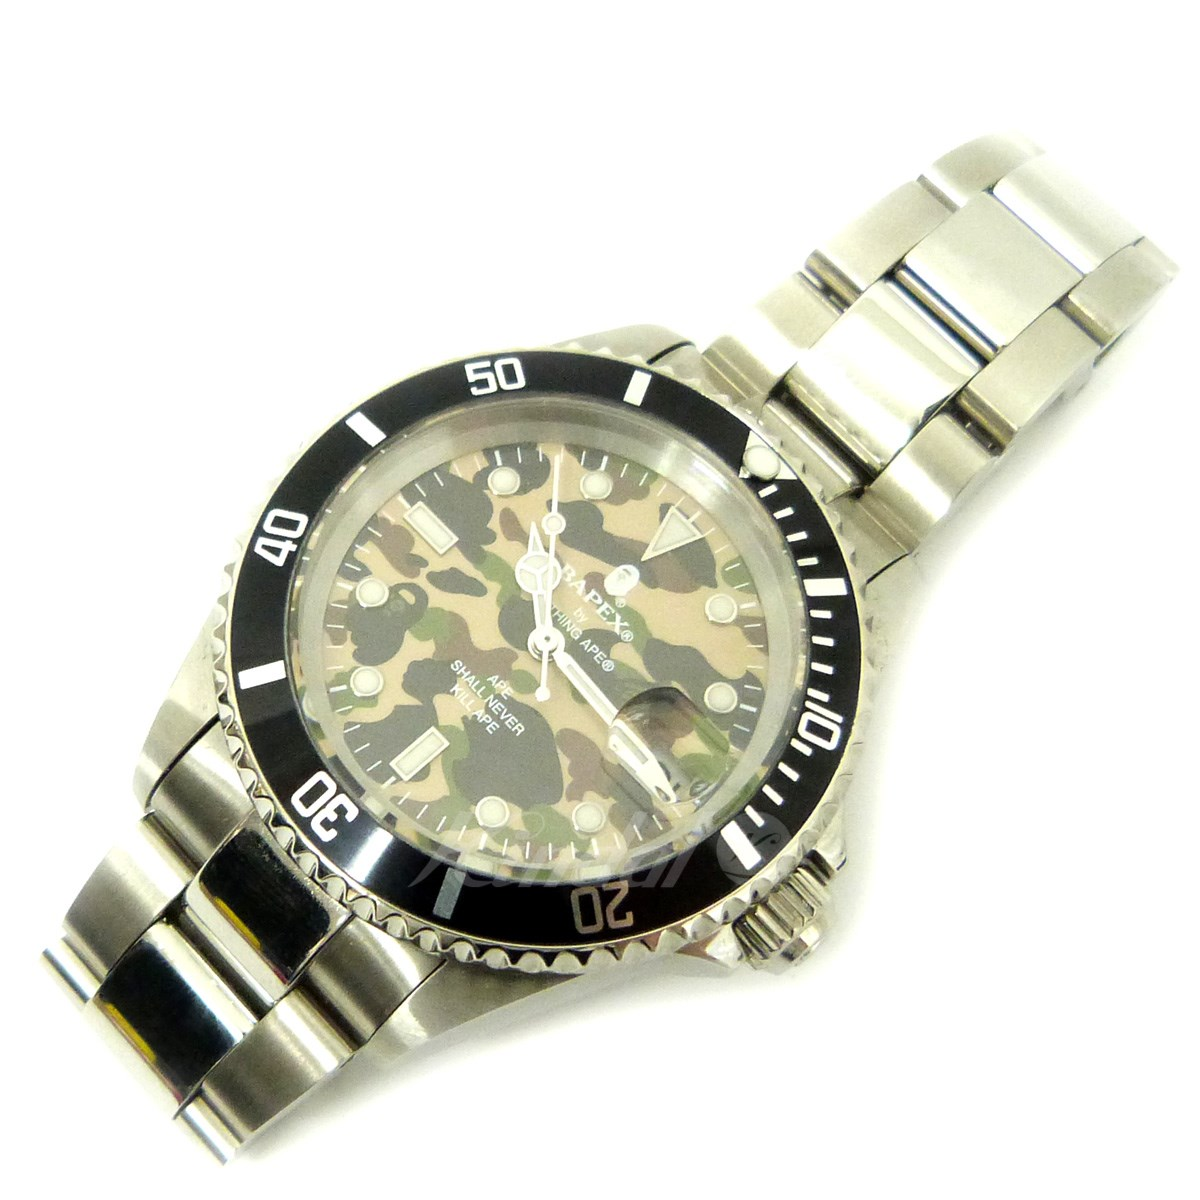 【中古】A BATHING APE 「1ST CAMO TYPE1 BAPEX」腕時計 【送料無料】 【052632】 【KIND1489】